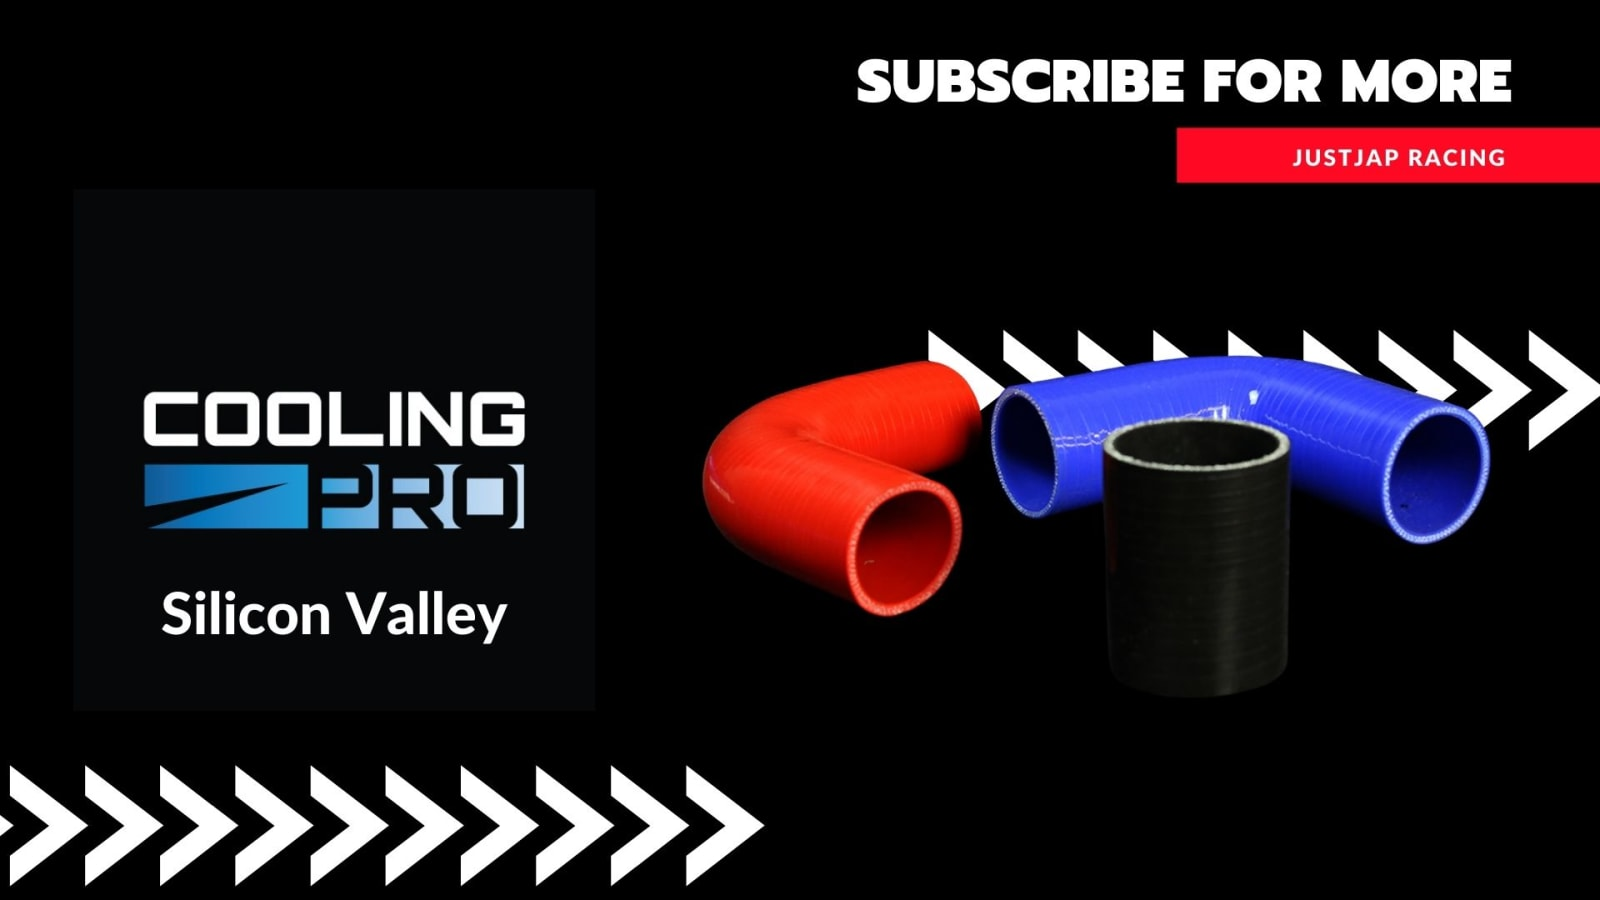 Cooling Pro Silicone 2.25 Inch / 57mm Straight Joiner Hose